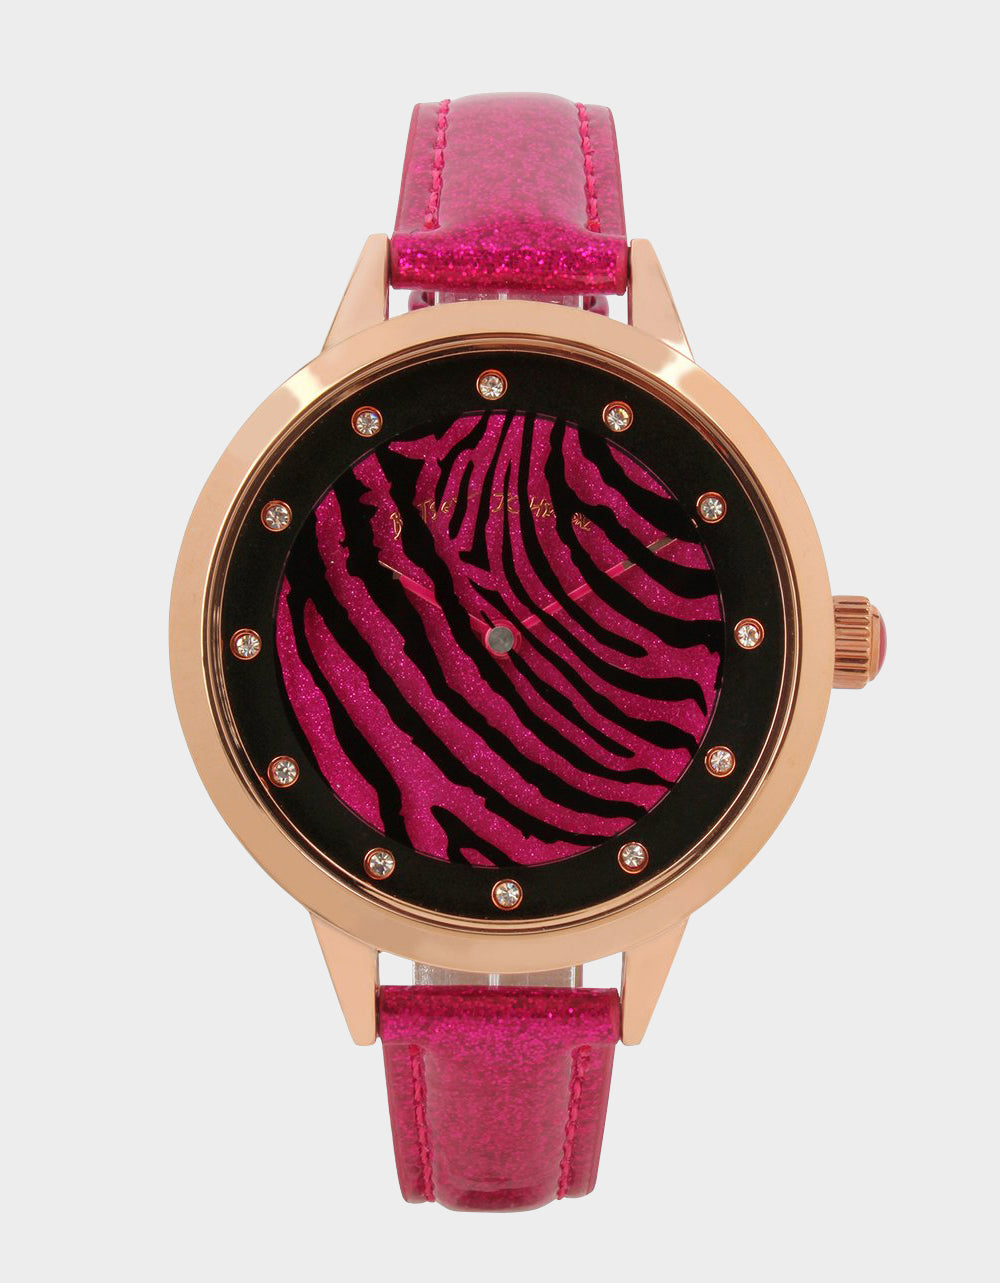 ROUND AND ROUND ZEBRA WATCH PINK - JEWELRY - Betsey Johnson